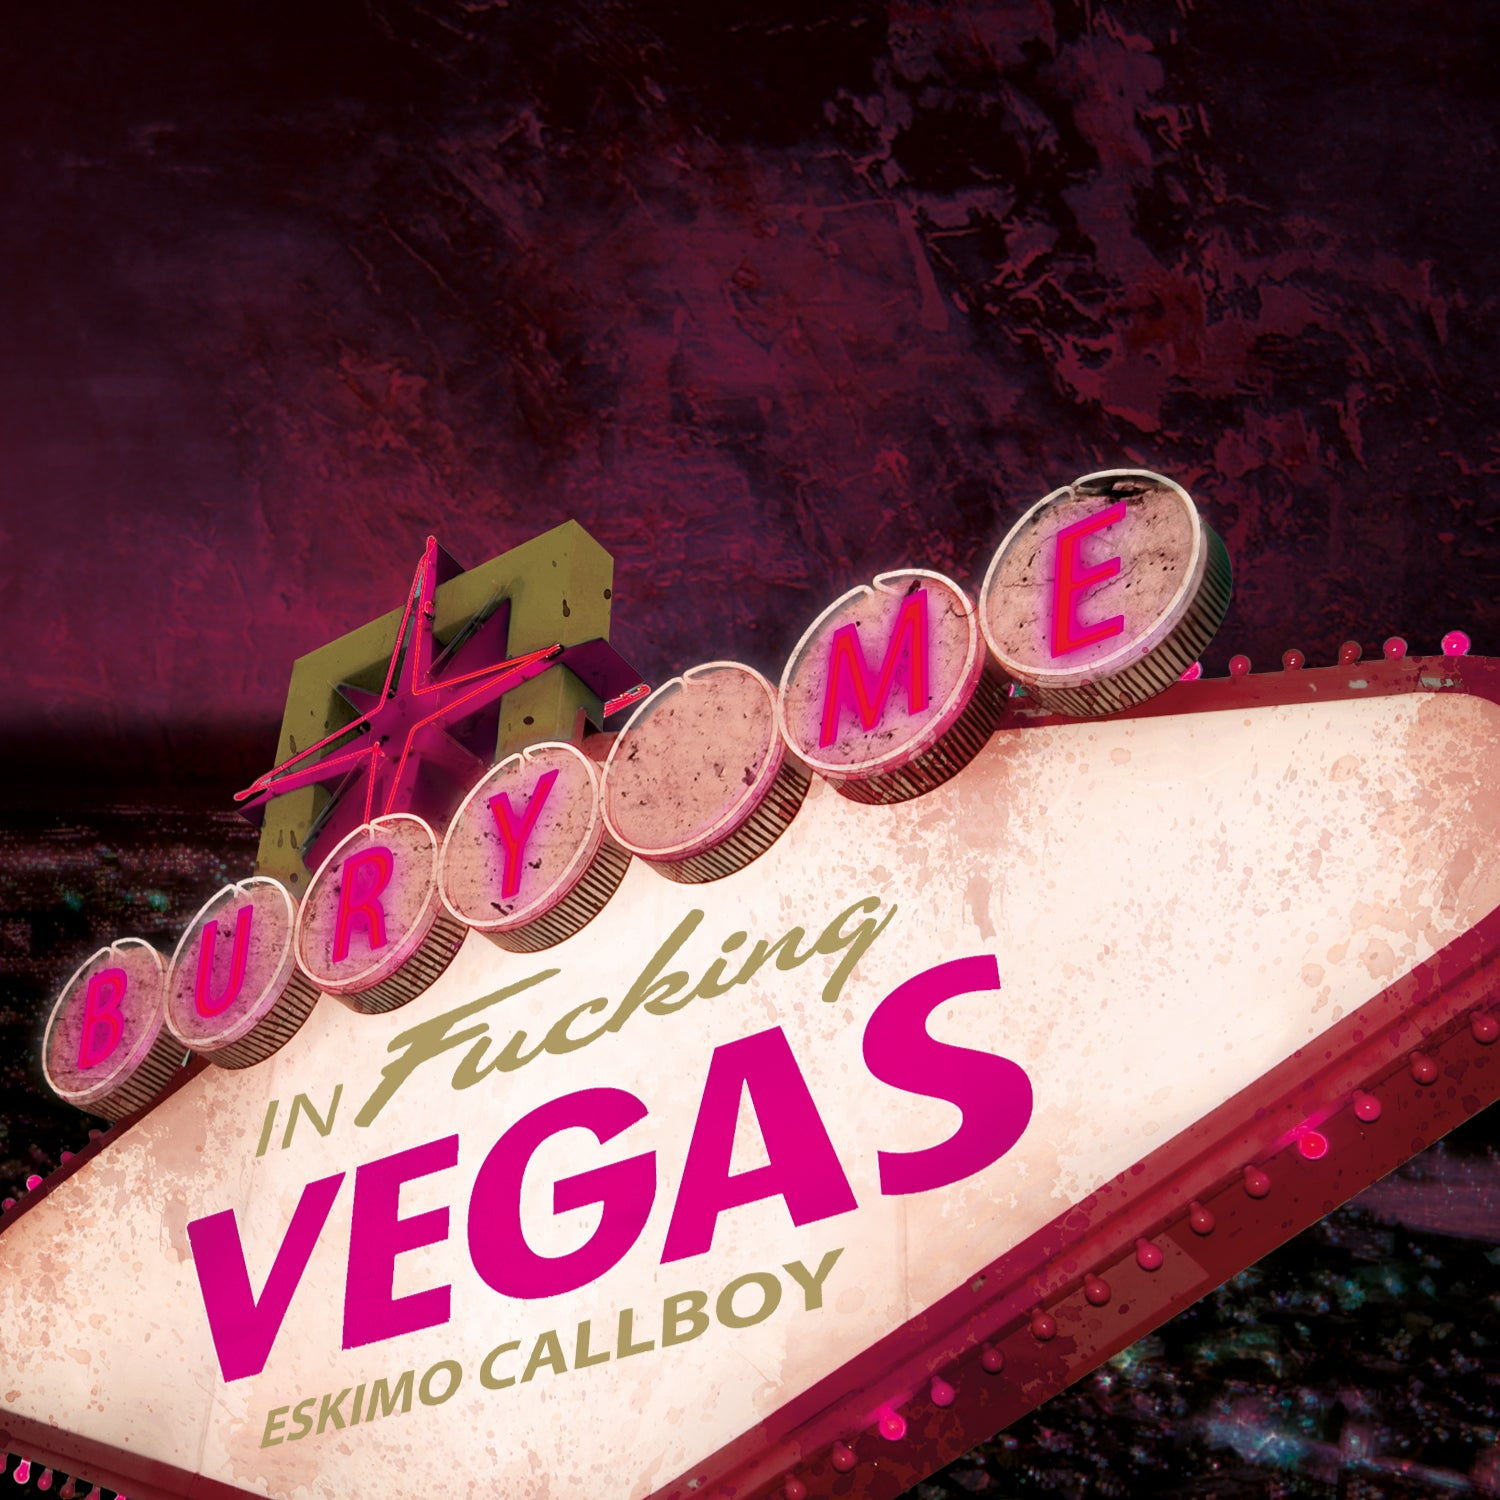 Eskimo Callboy - Bury Me In Vegas (2012) - CD - Redfield Records